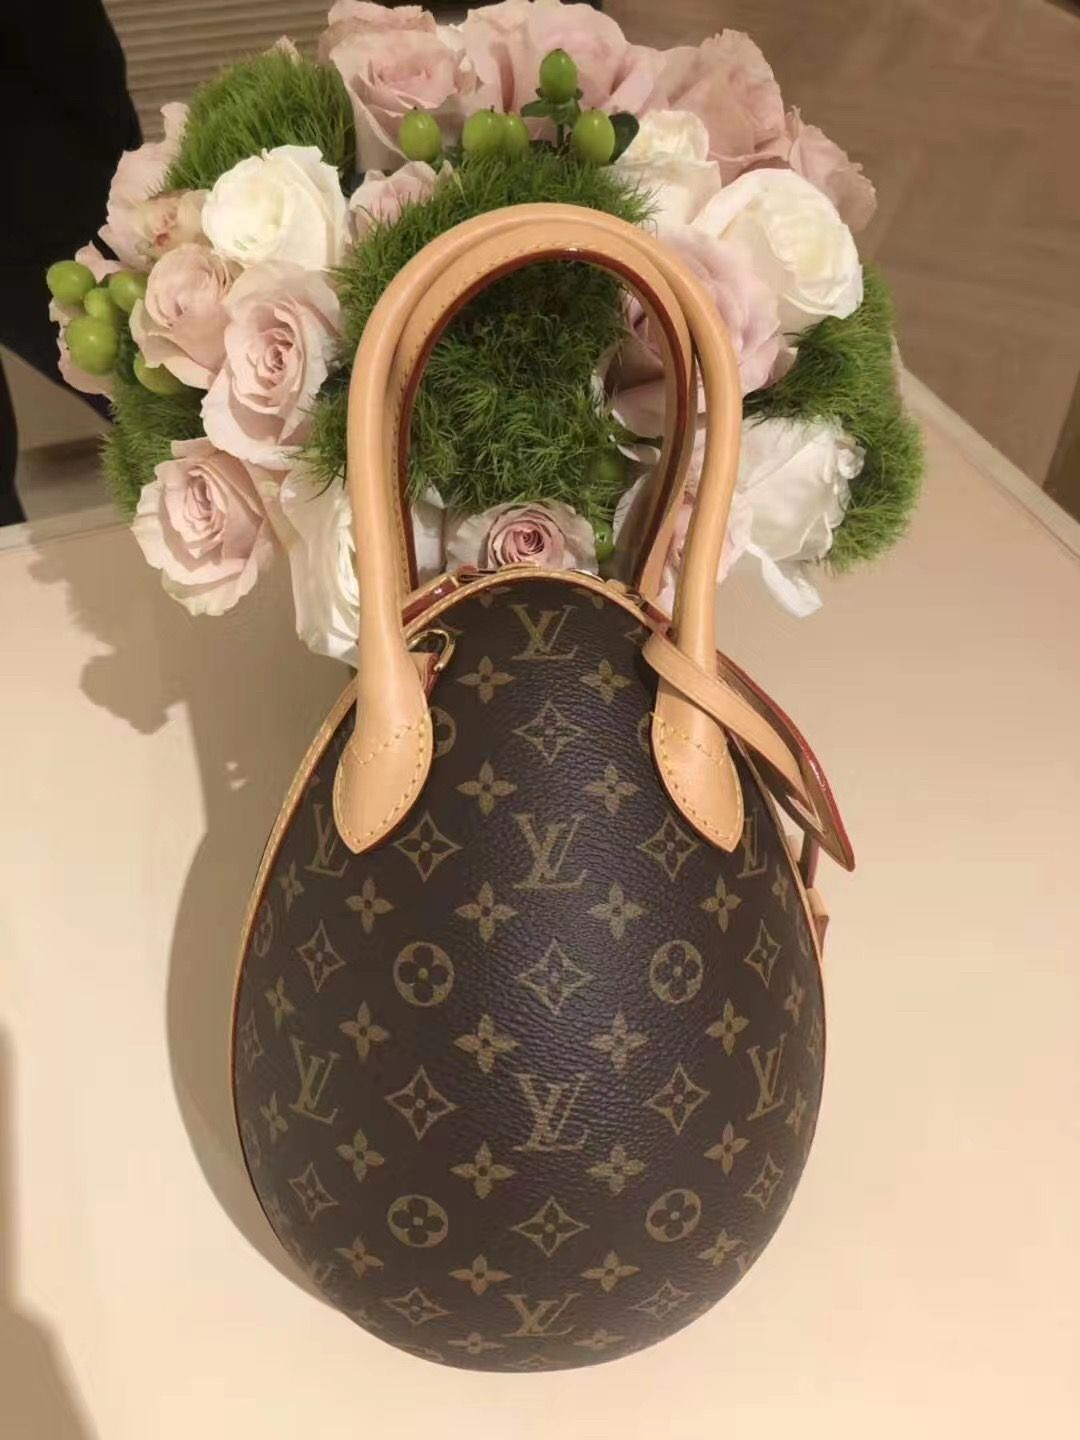 Louis Vuitton Monogram Lv Egg Bag M44587 Louisvuittoneggbag